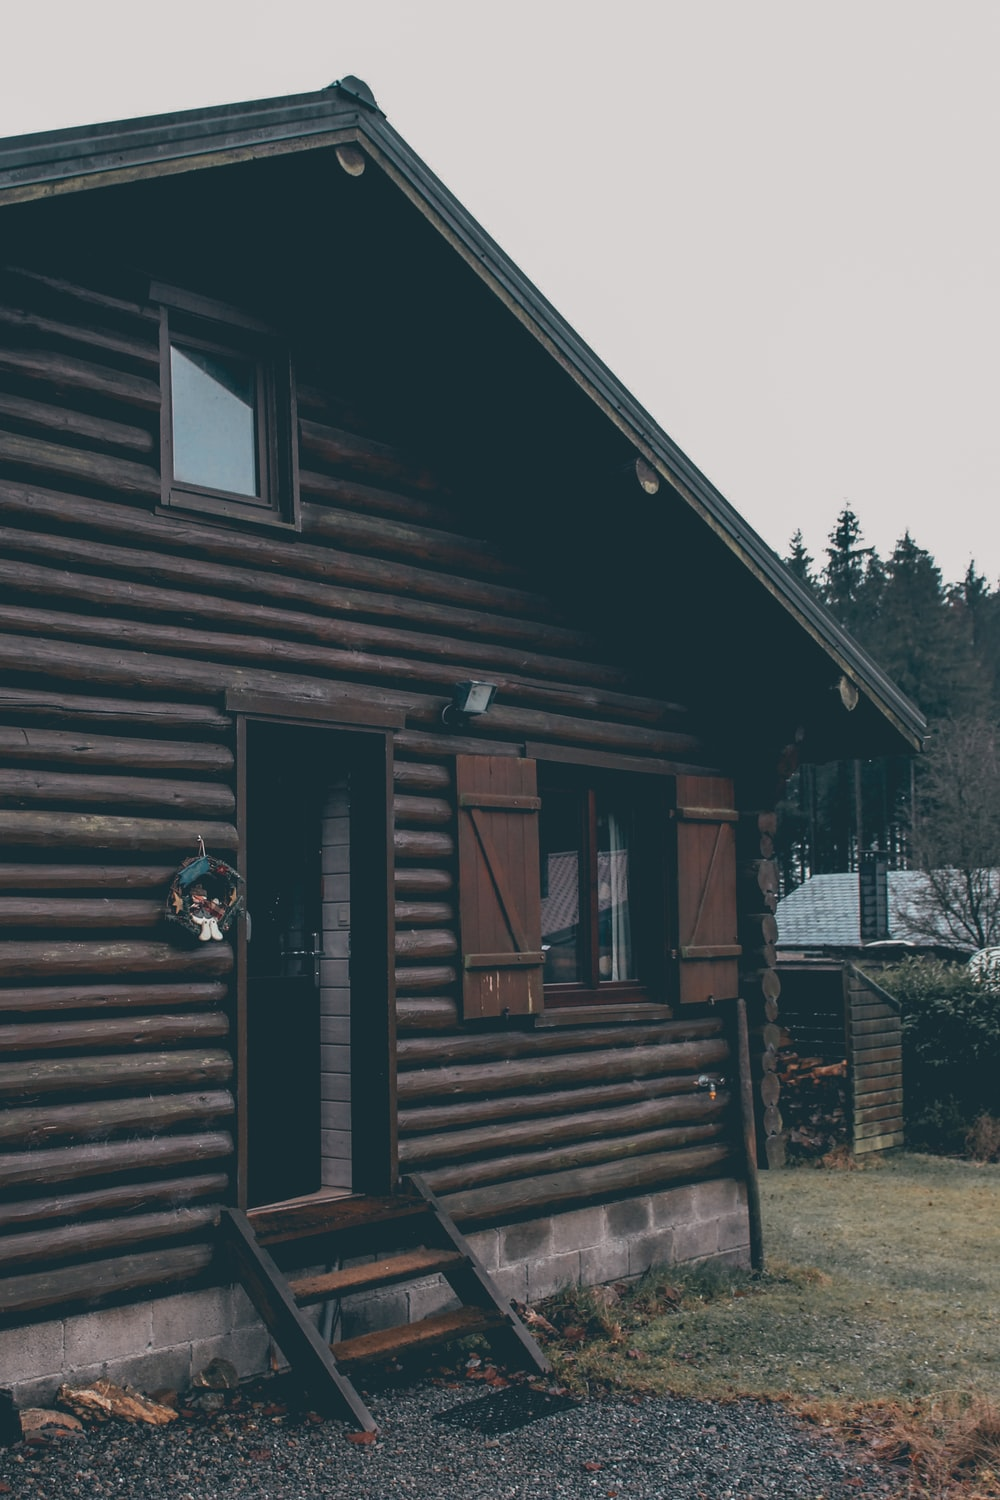 brown wooden house near green trees during daytime